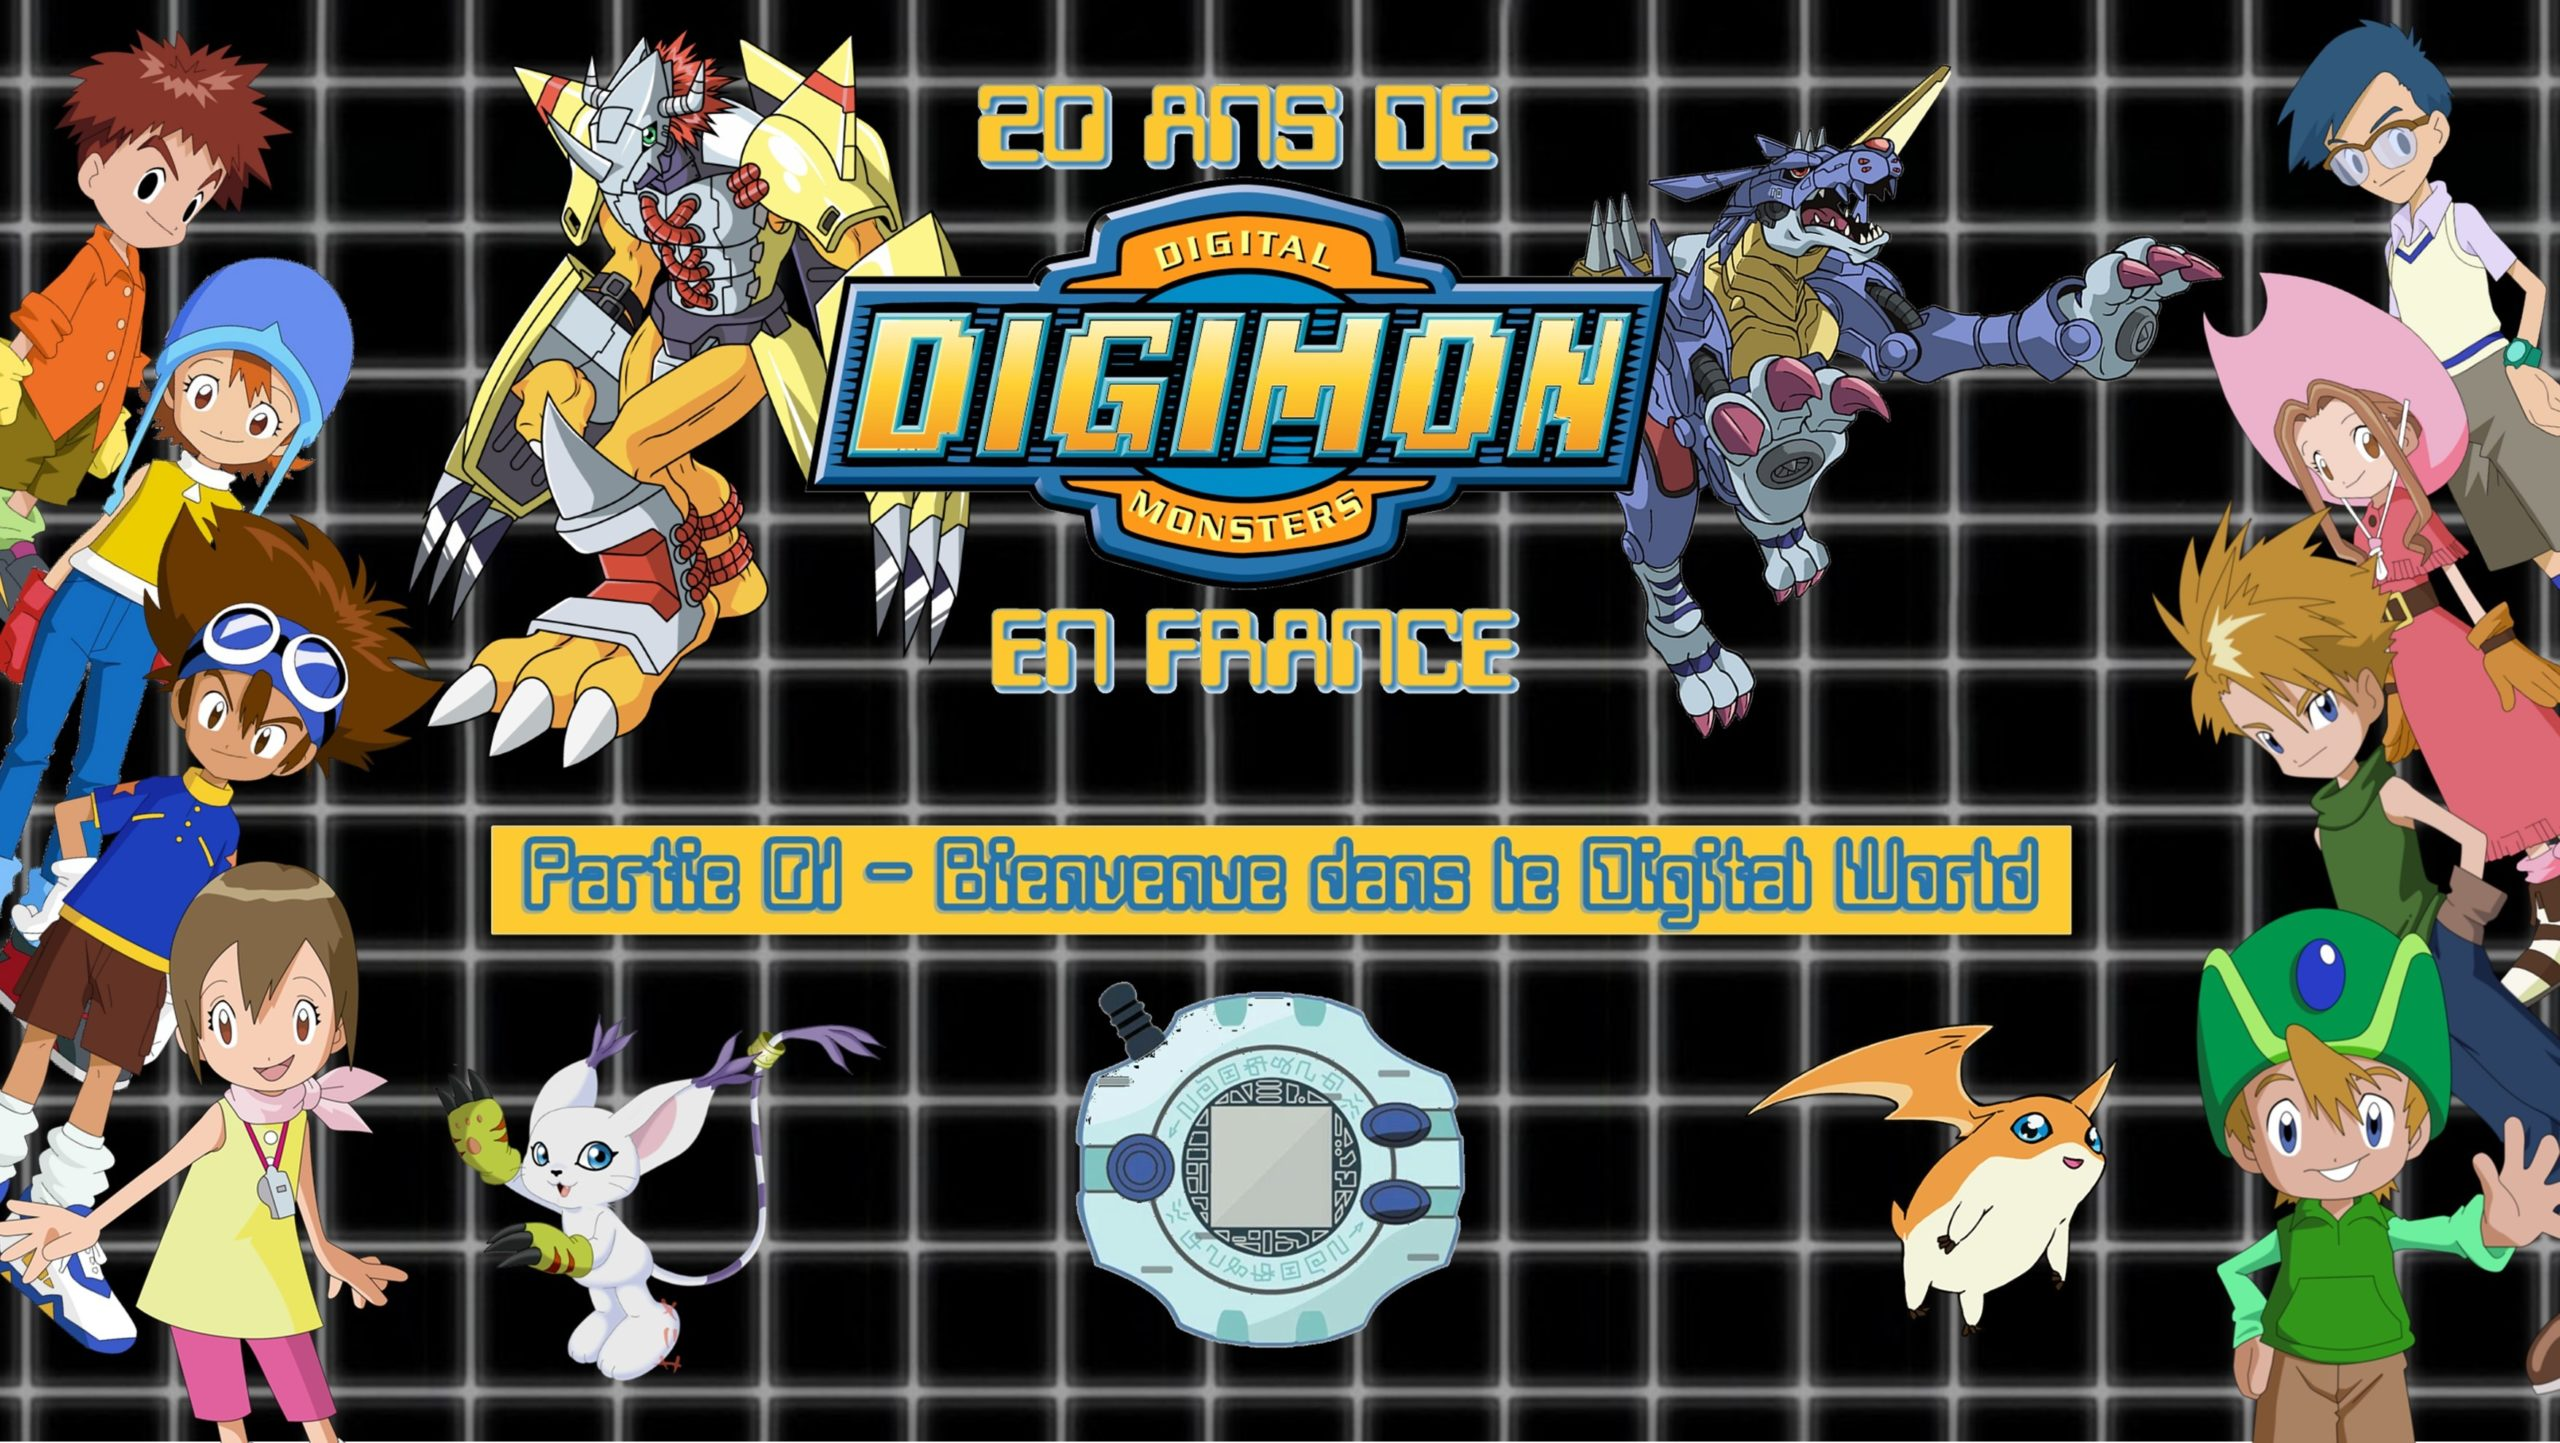 20 ans de Digimon en France : La Série Documentaire en 4 épisodes !